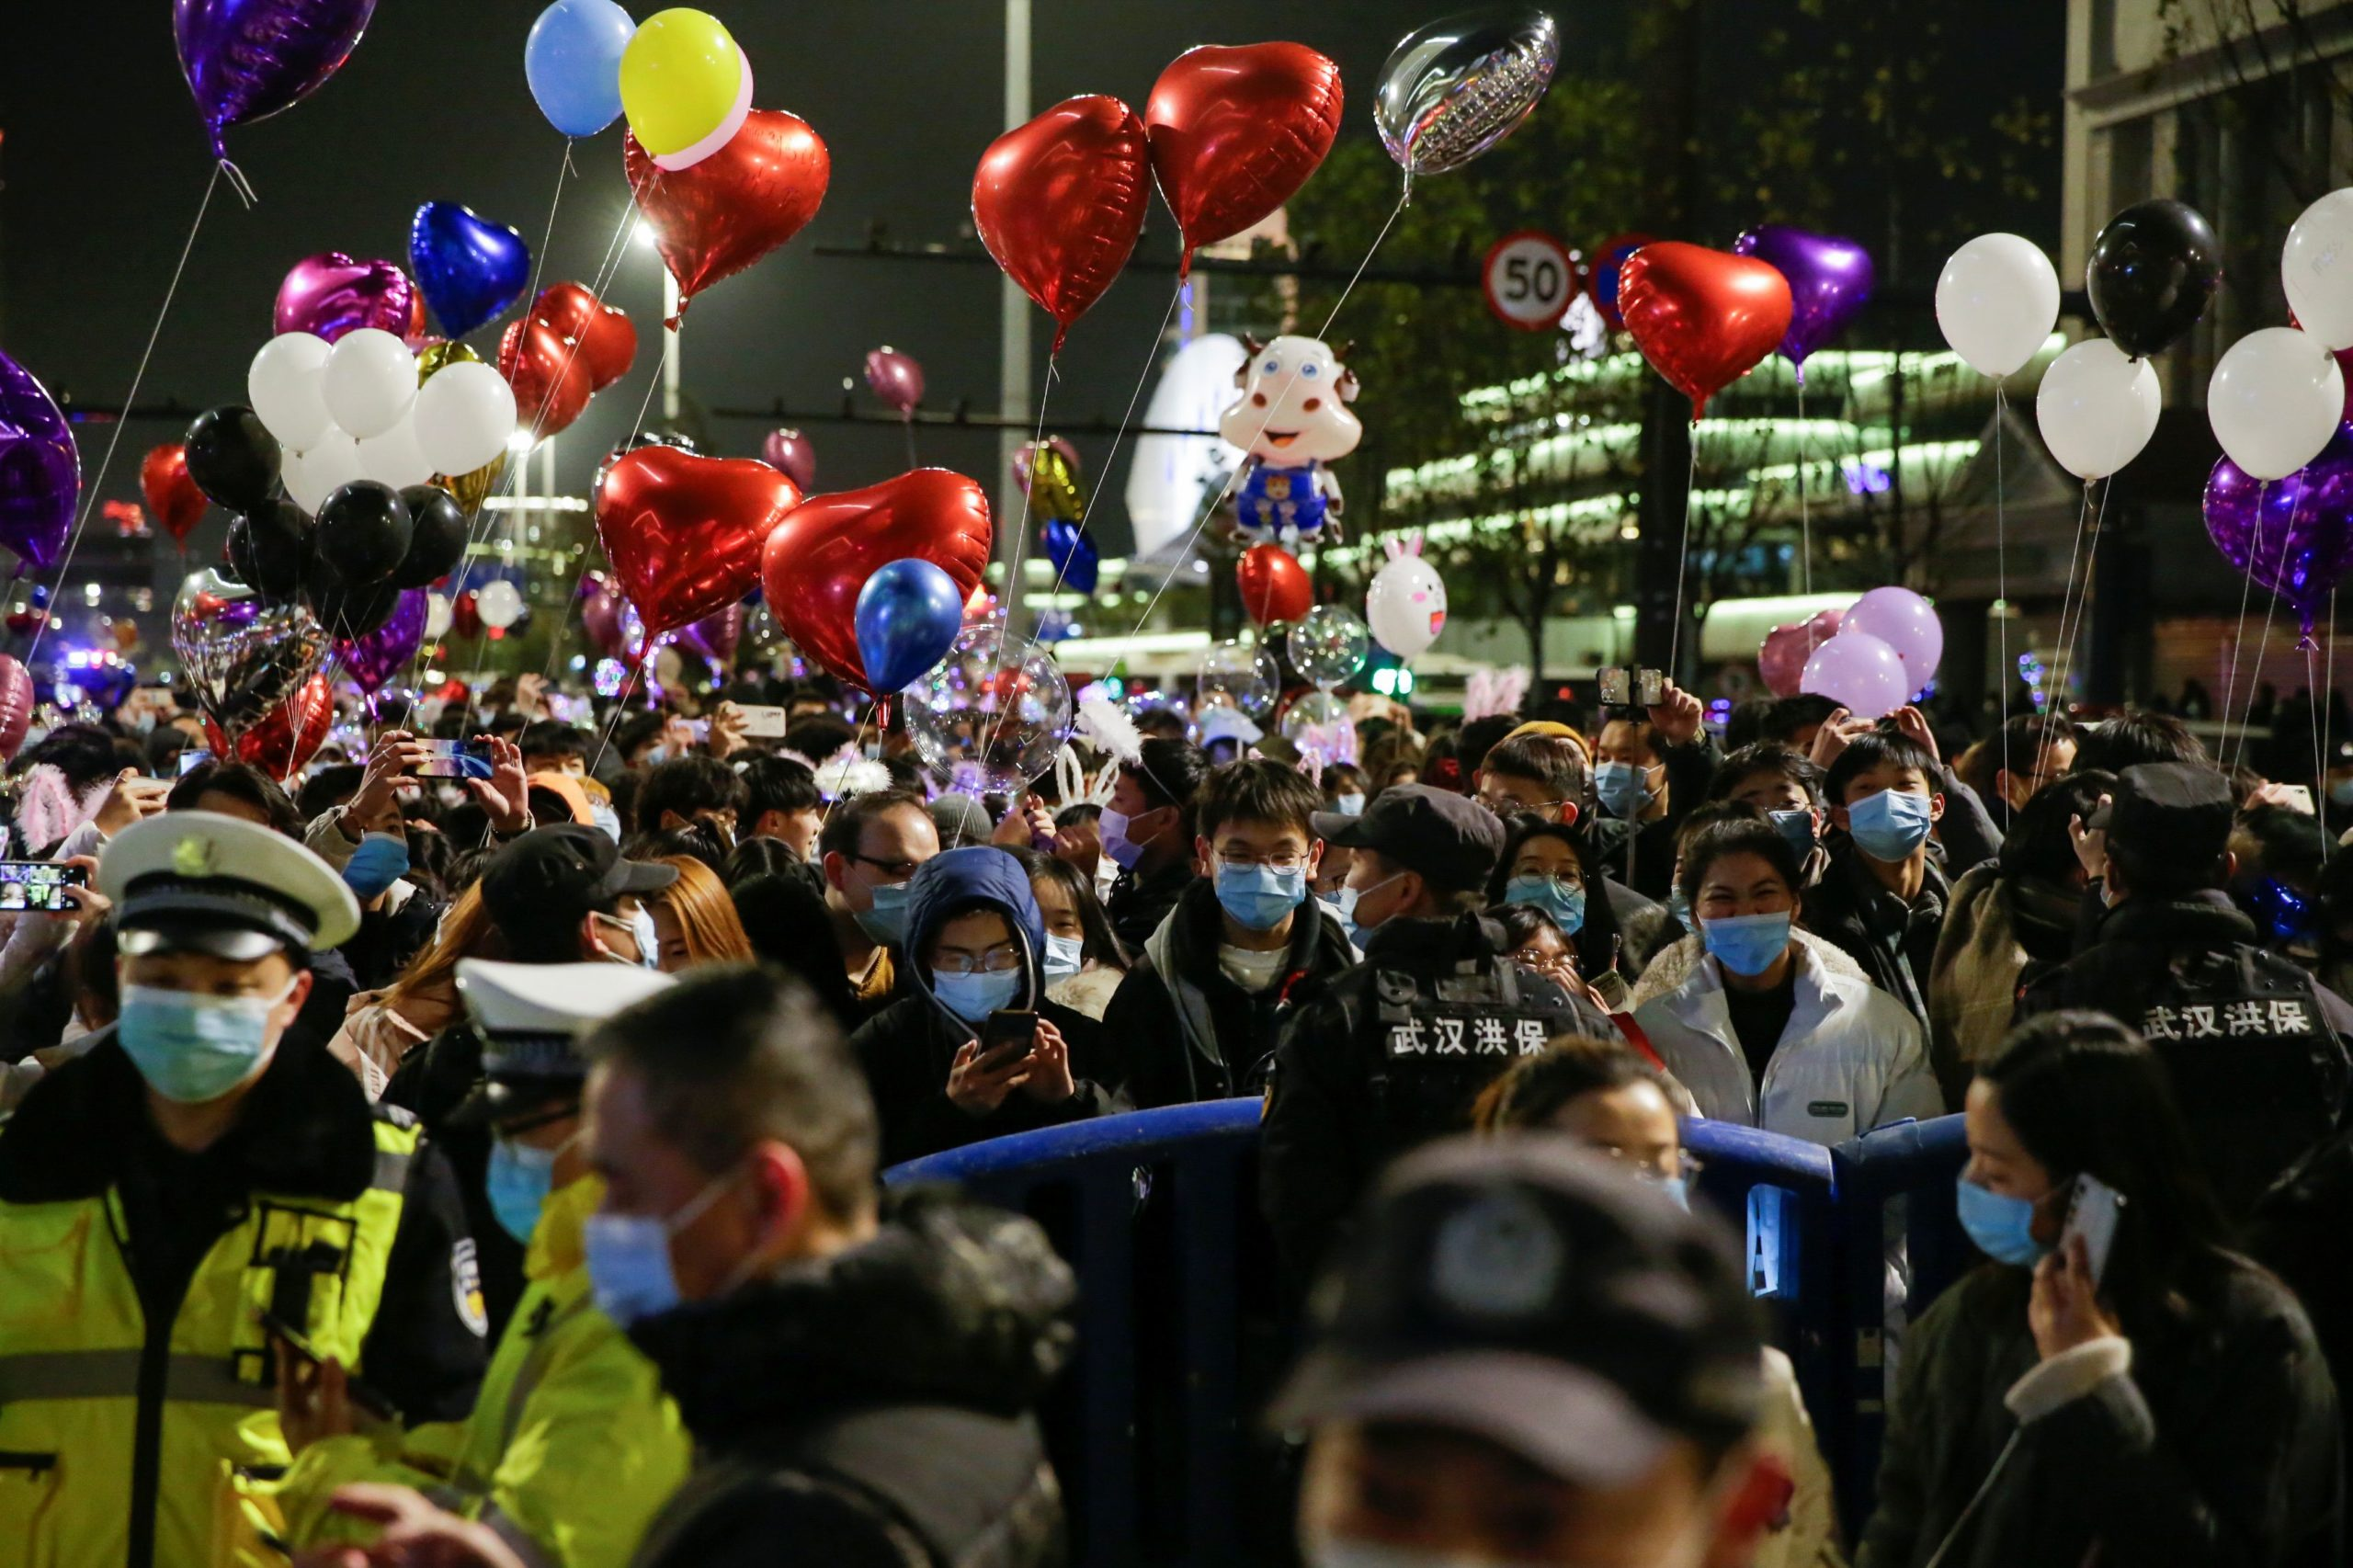 Police officers stand guard as people gather to celebrate the arrival of the new year during the coronavirus disease (COVID-19) outbreak in Wuhan, China December 31, 2020.